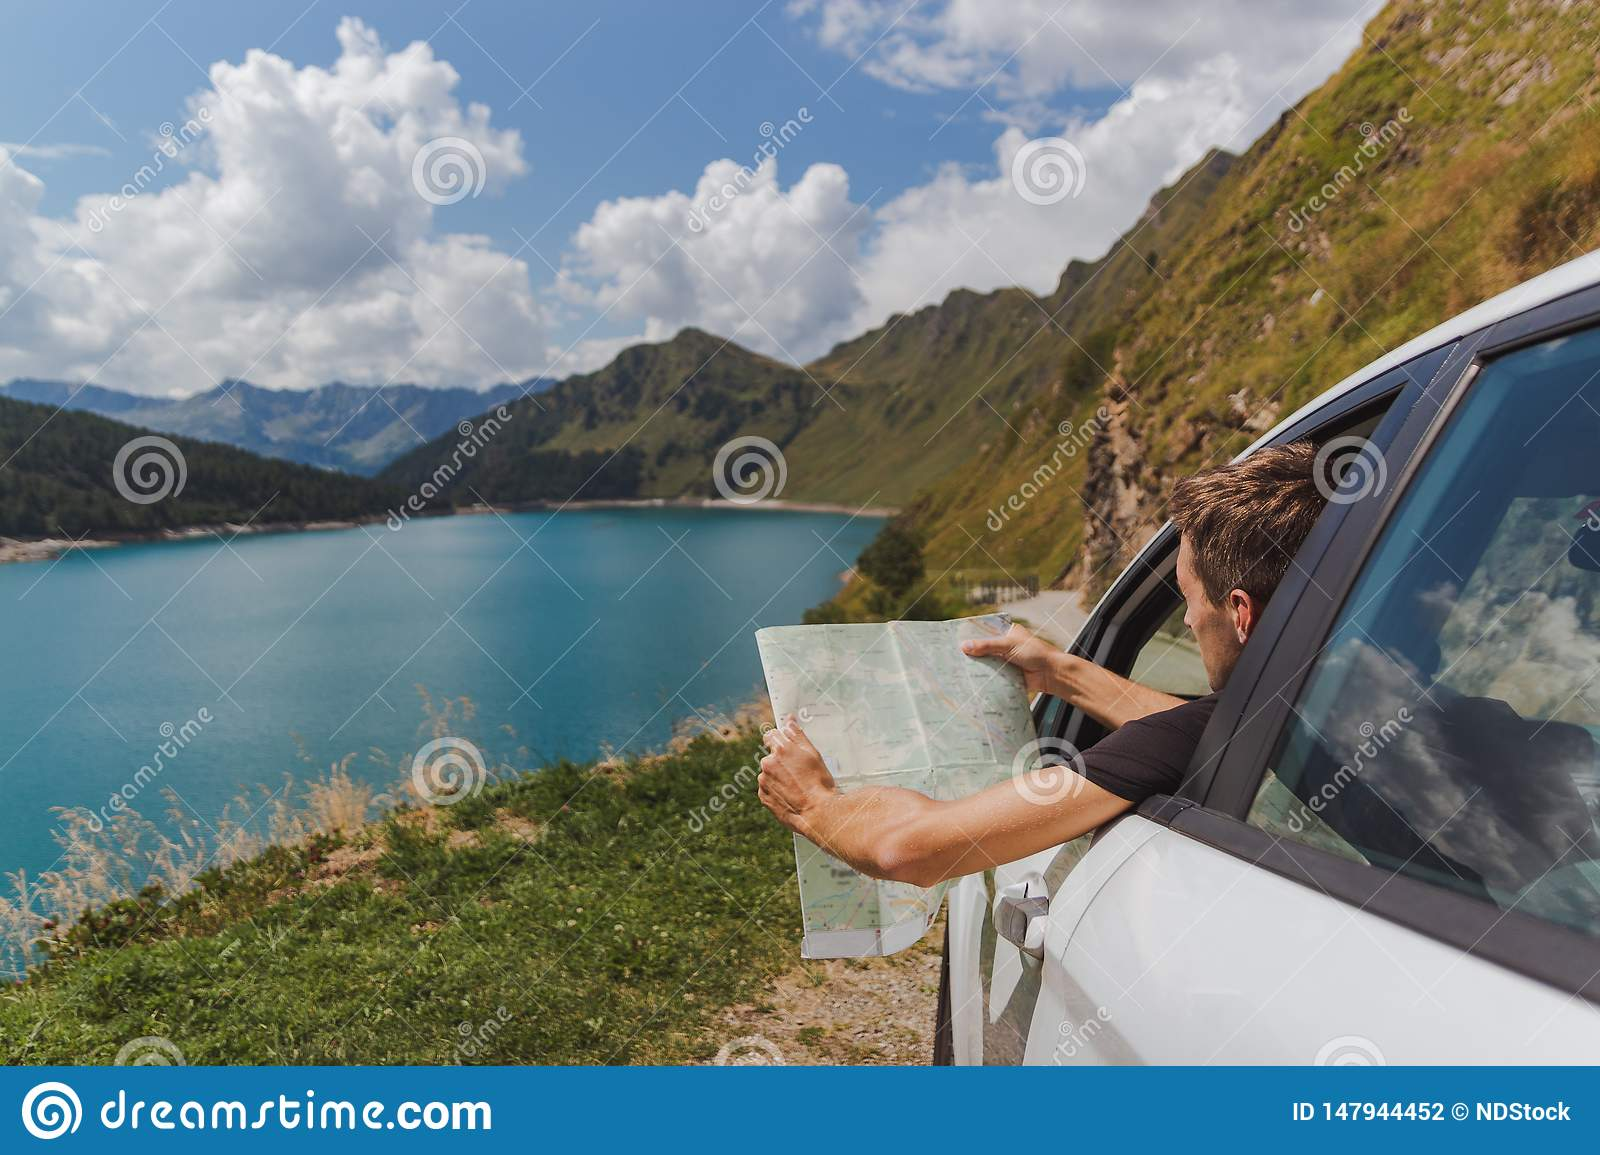 Young man lost in the mountains with his car looking the map to find the right road